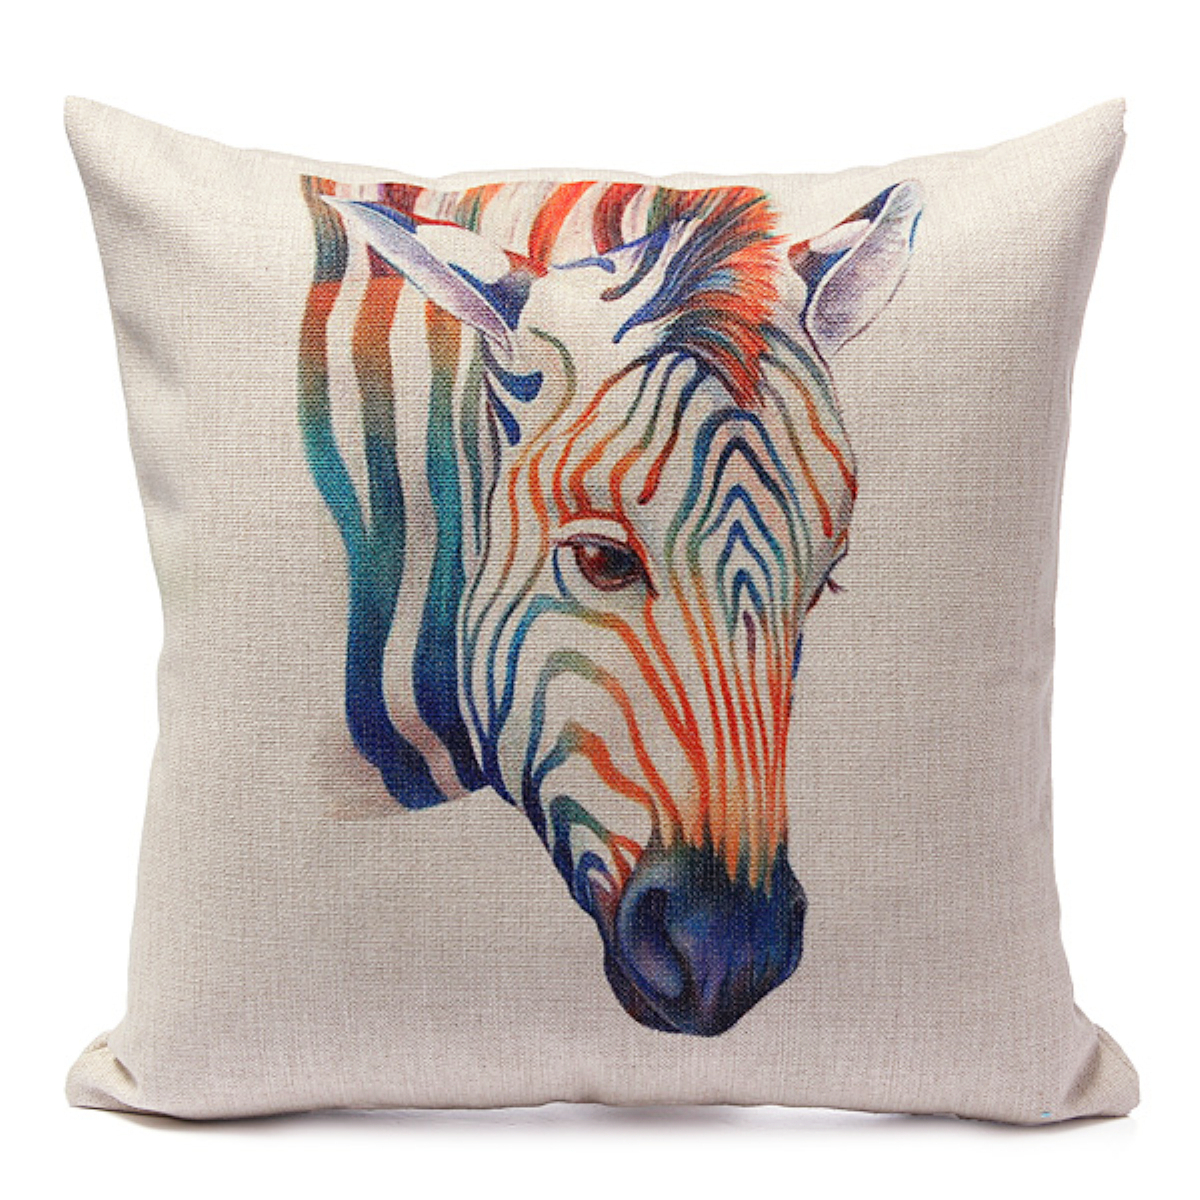 Animal Pillows : Animal World Home Decor Cotton Linen Pillow Case Sofa Waist Throw Cushion Cover eBay